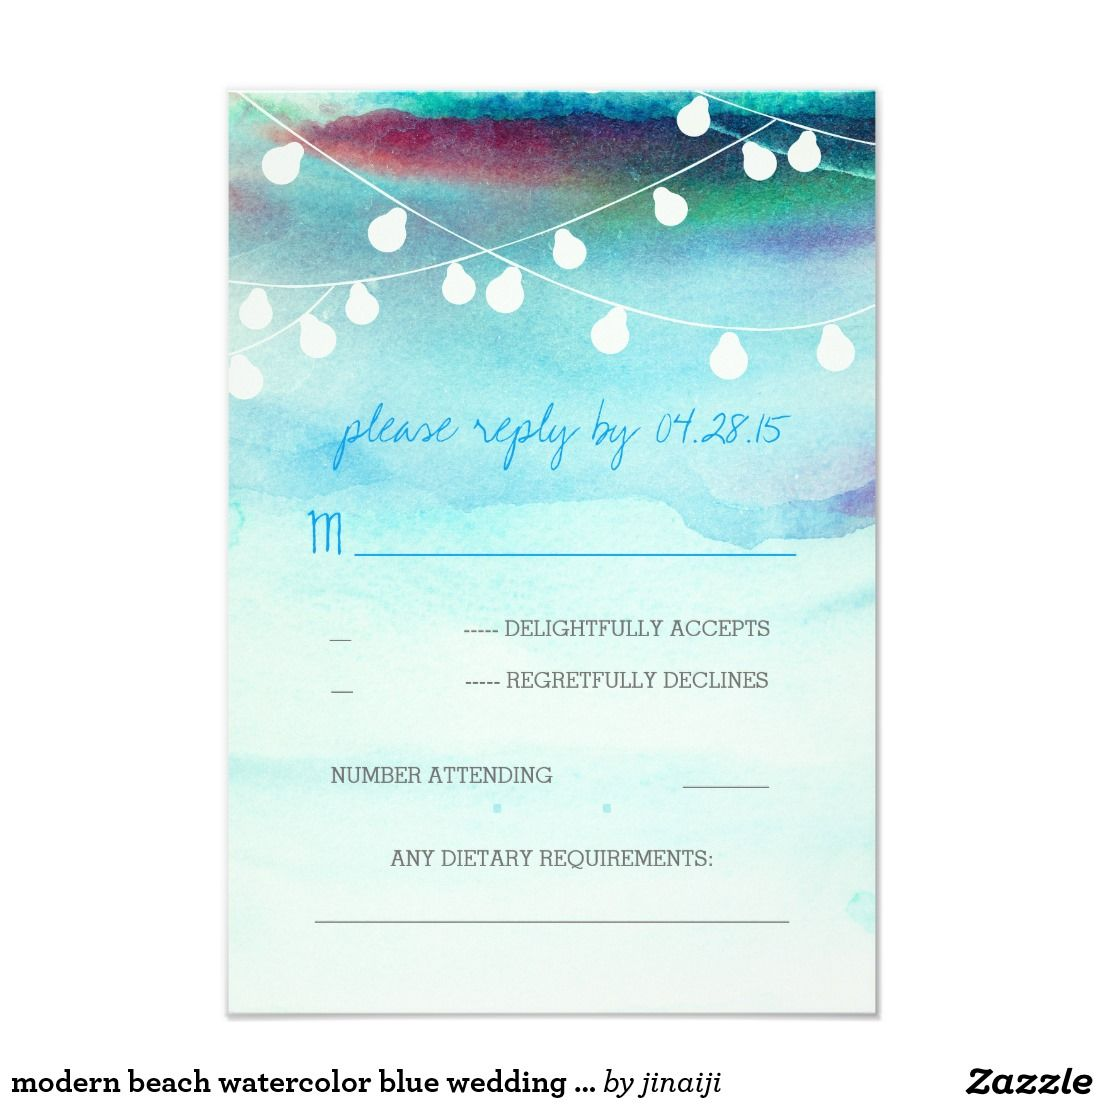 modern beach watercolor blue wedding RSVP cards | Watercolor Wedding ...